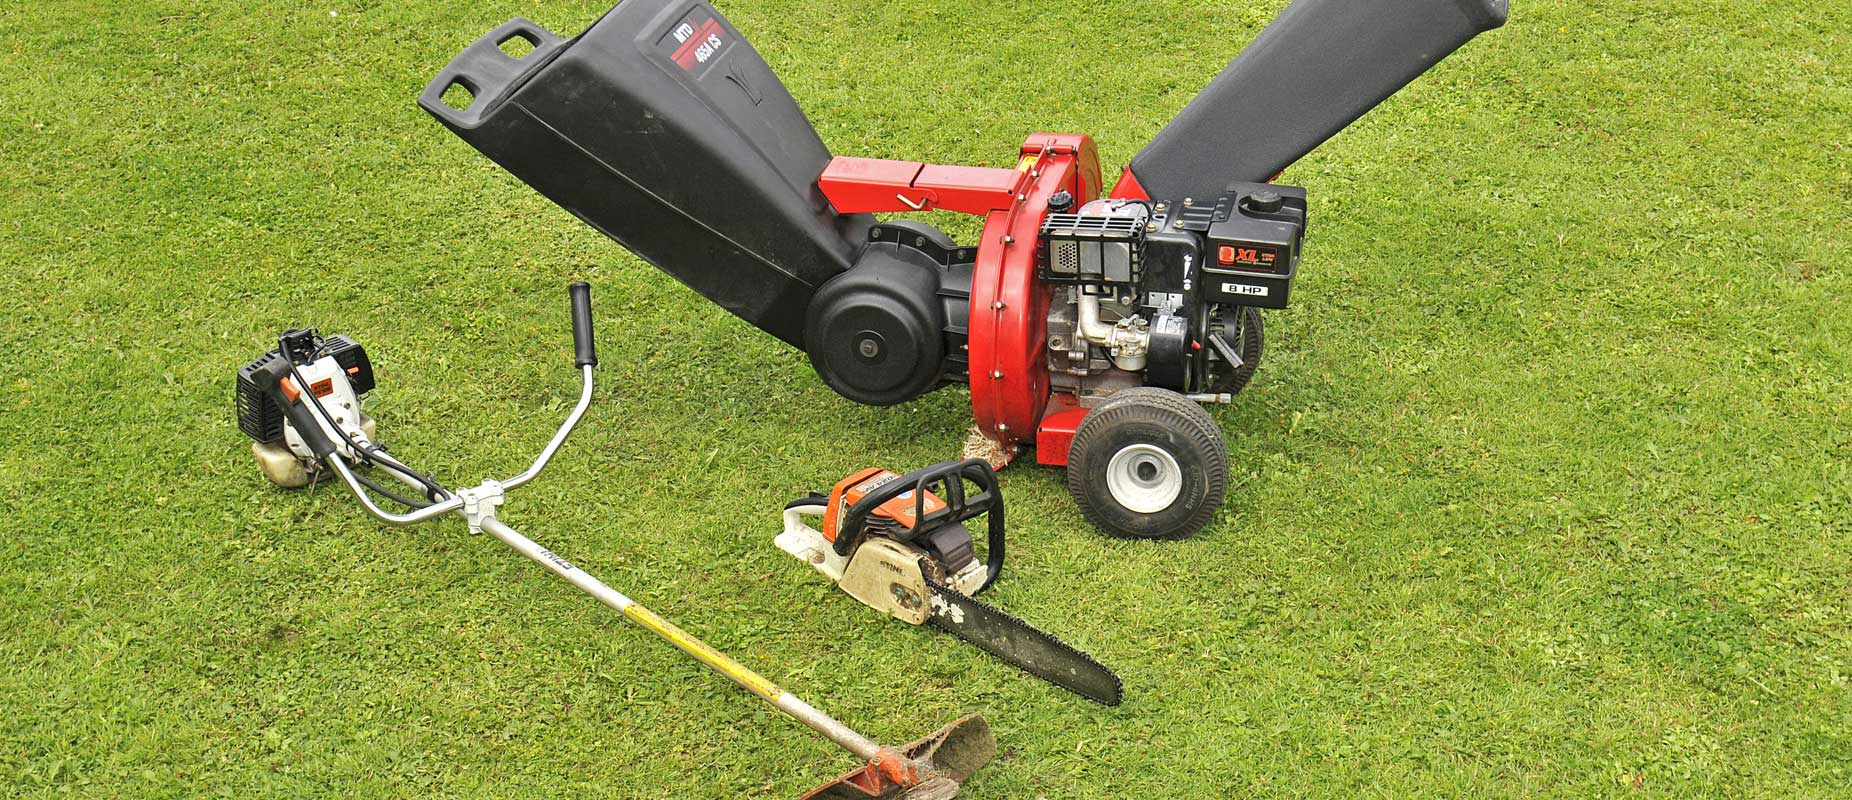 New and Second Hand Lawn Mower and garden machinery sales and servicing across Essex